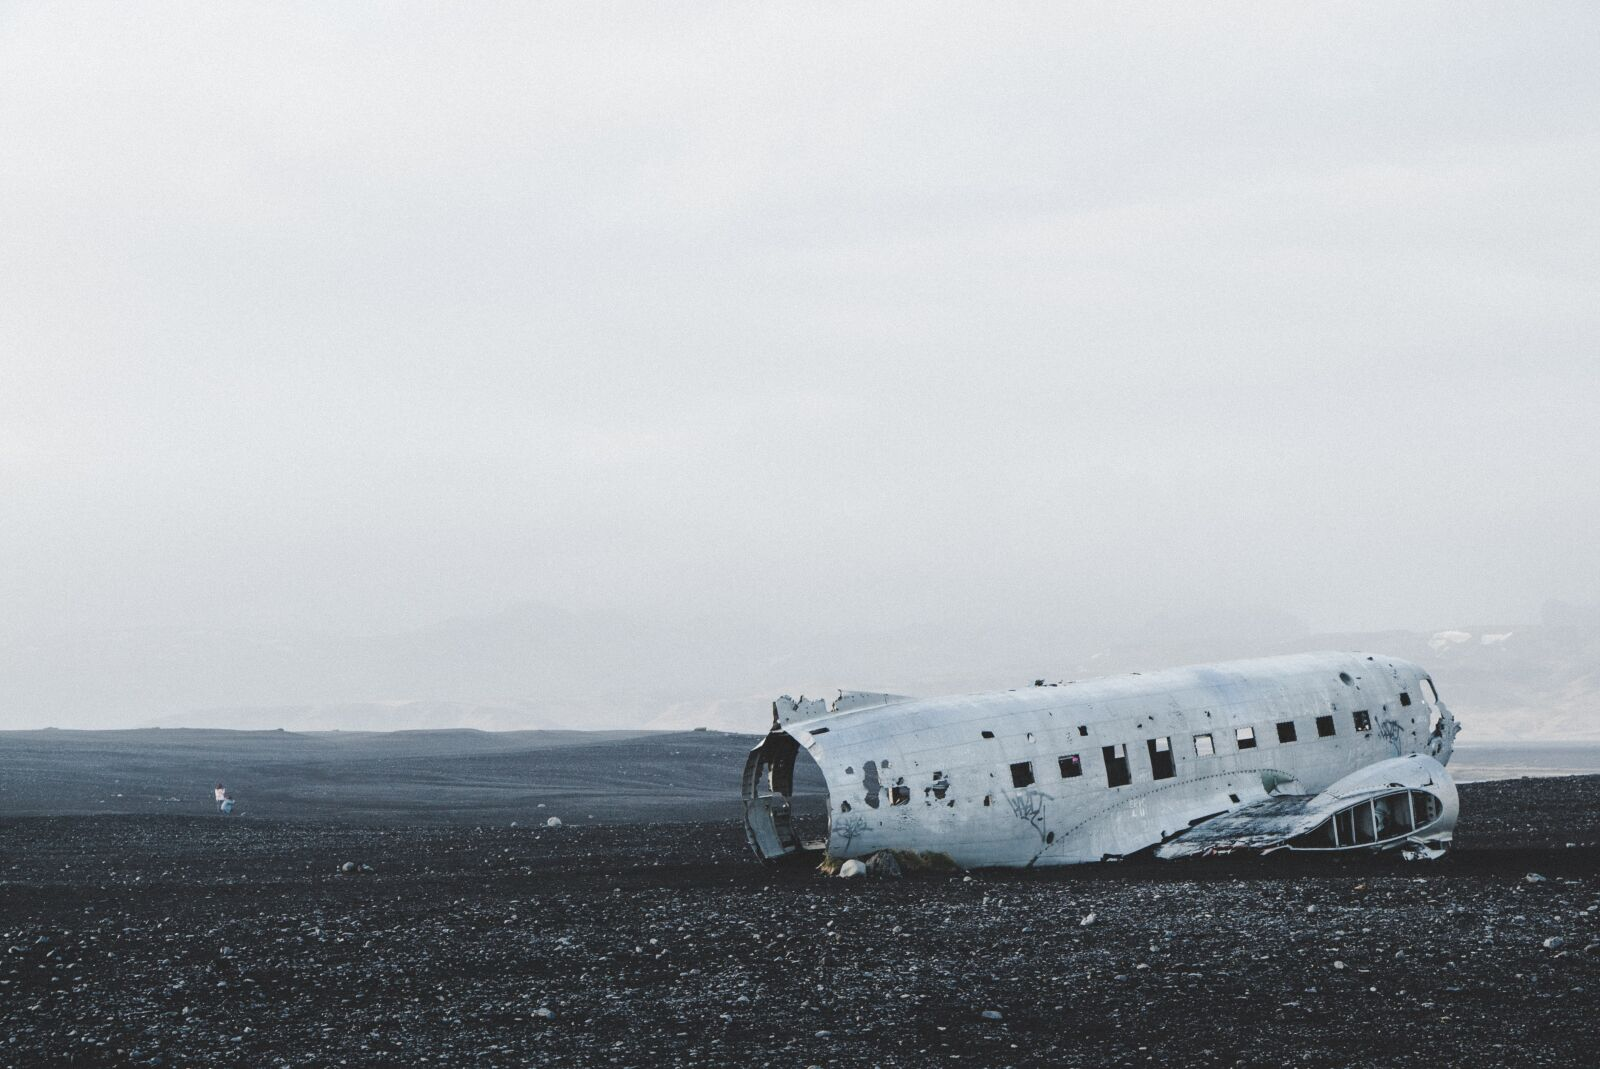 """Sony a7S sample photo. """"Plane wreck, beach, iceland"""" photography"""